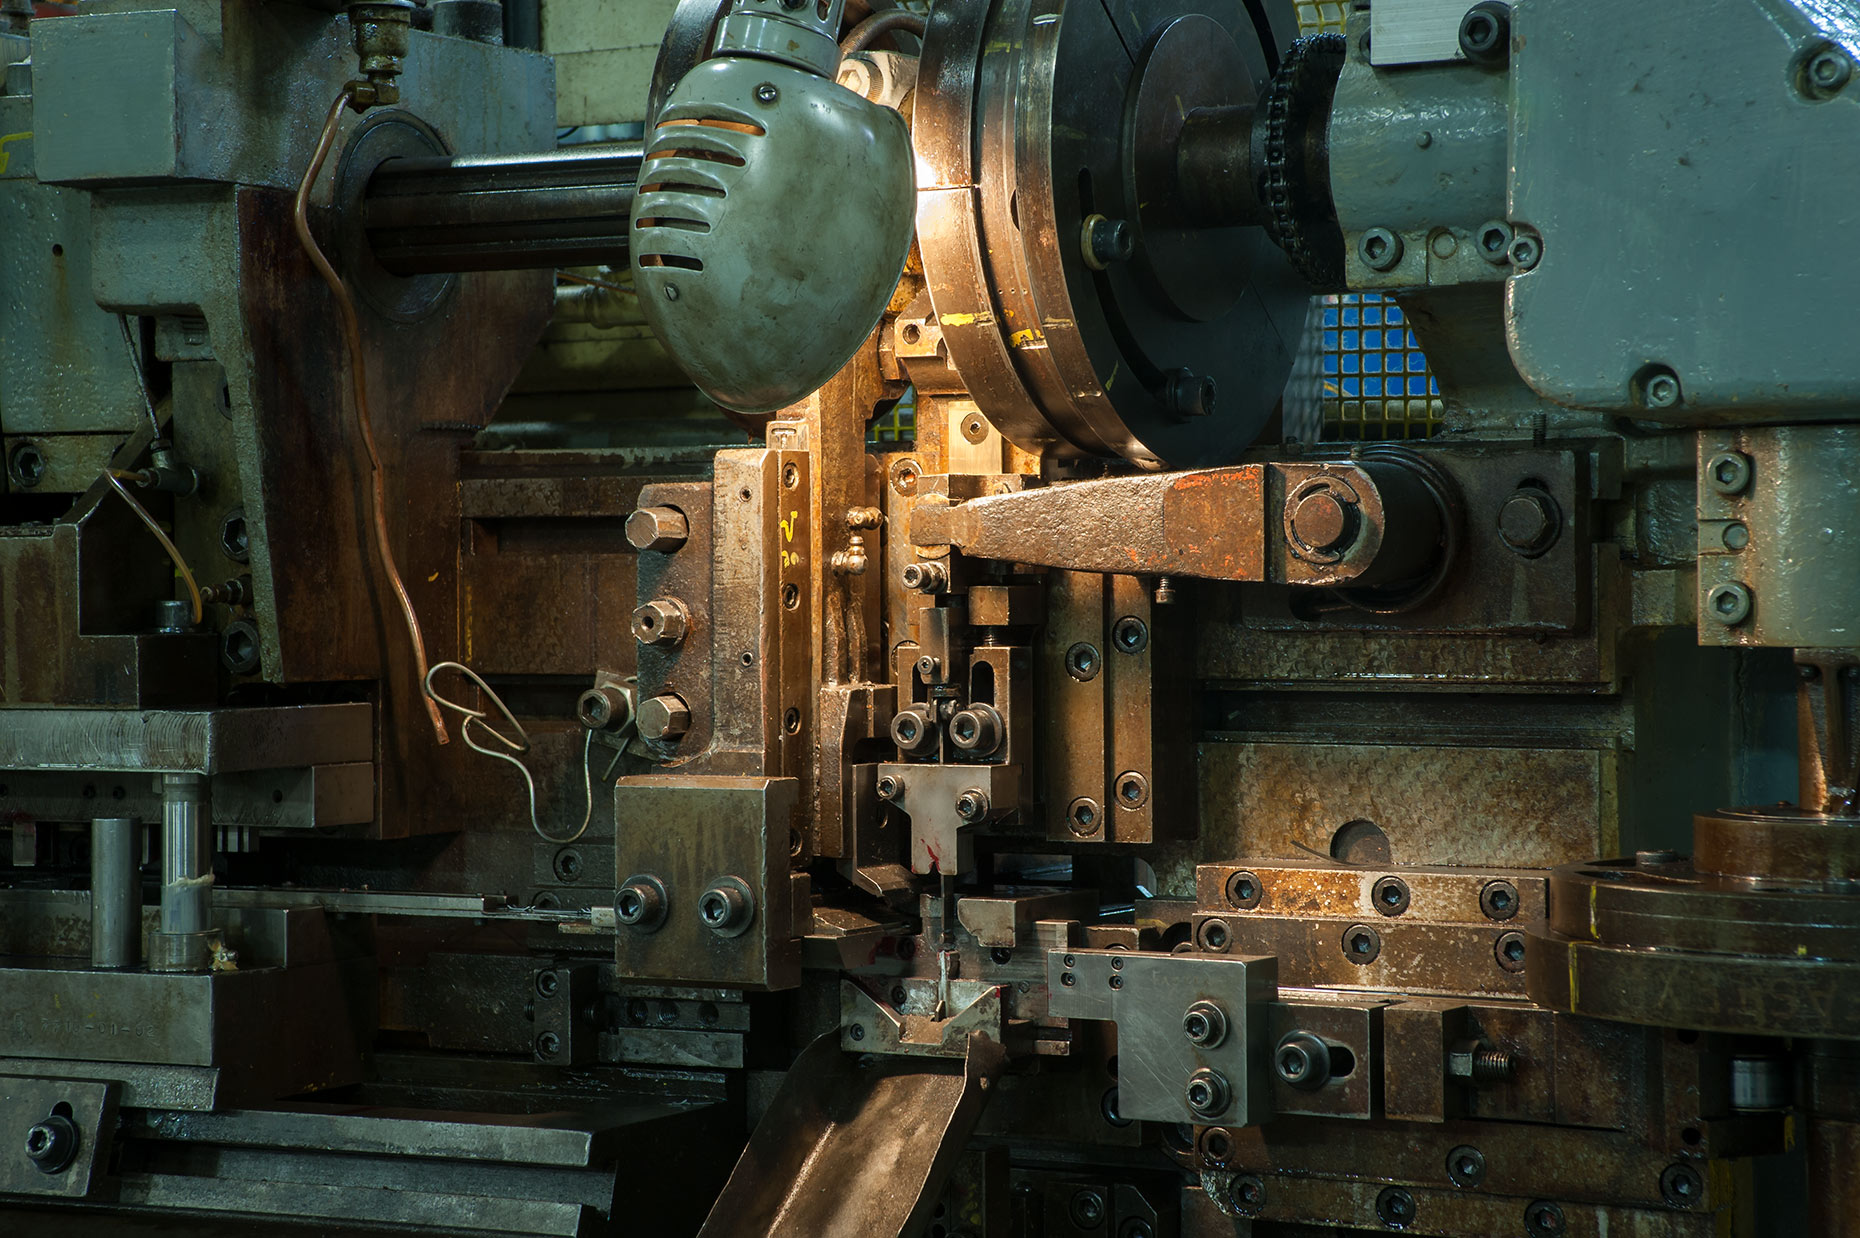 Machinery at Jason Inc. manufacturing plant